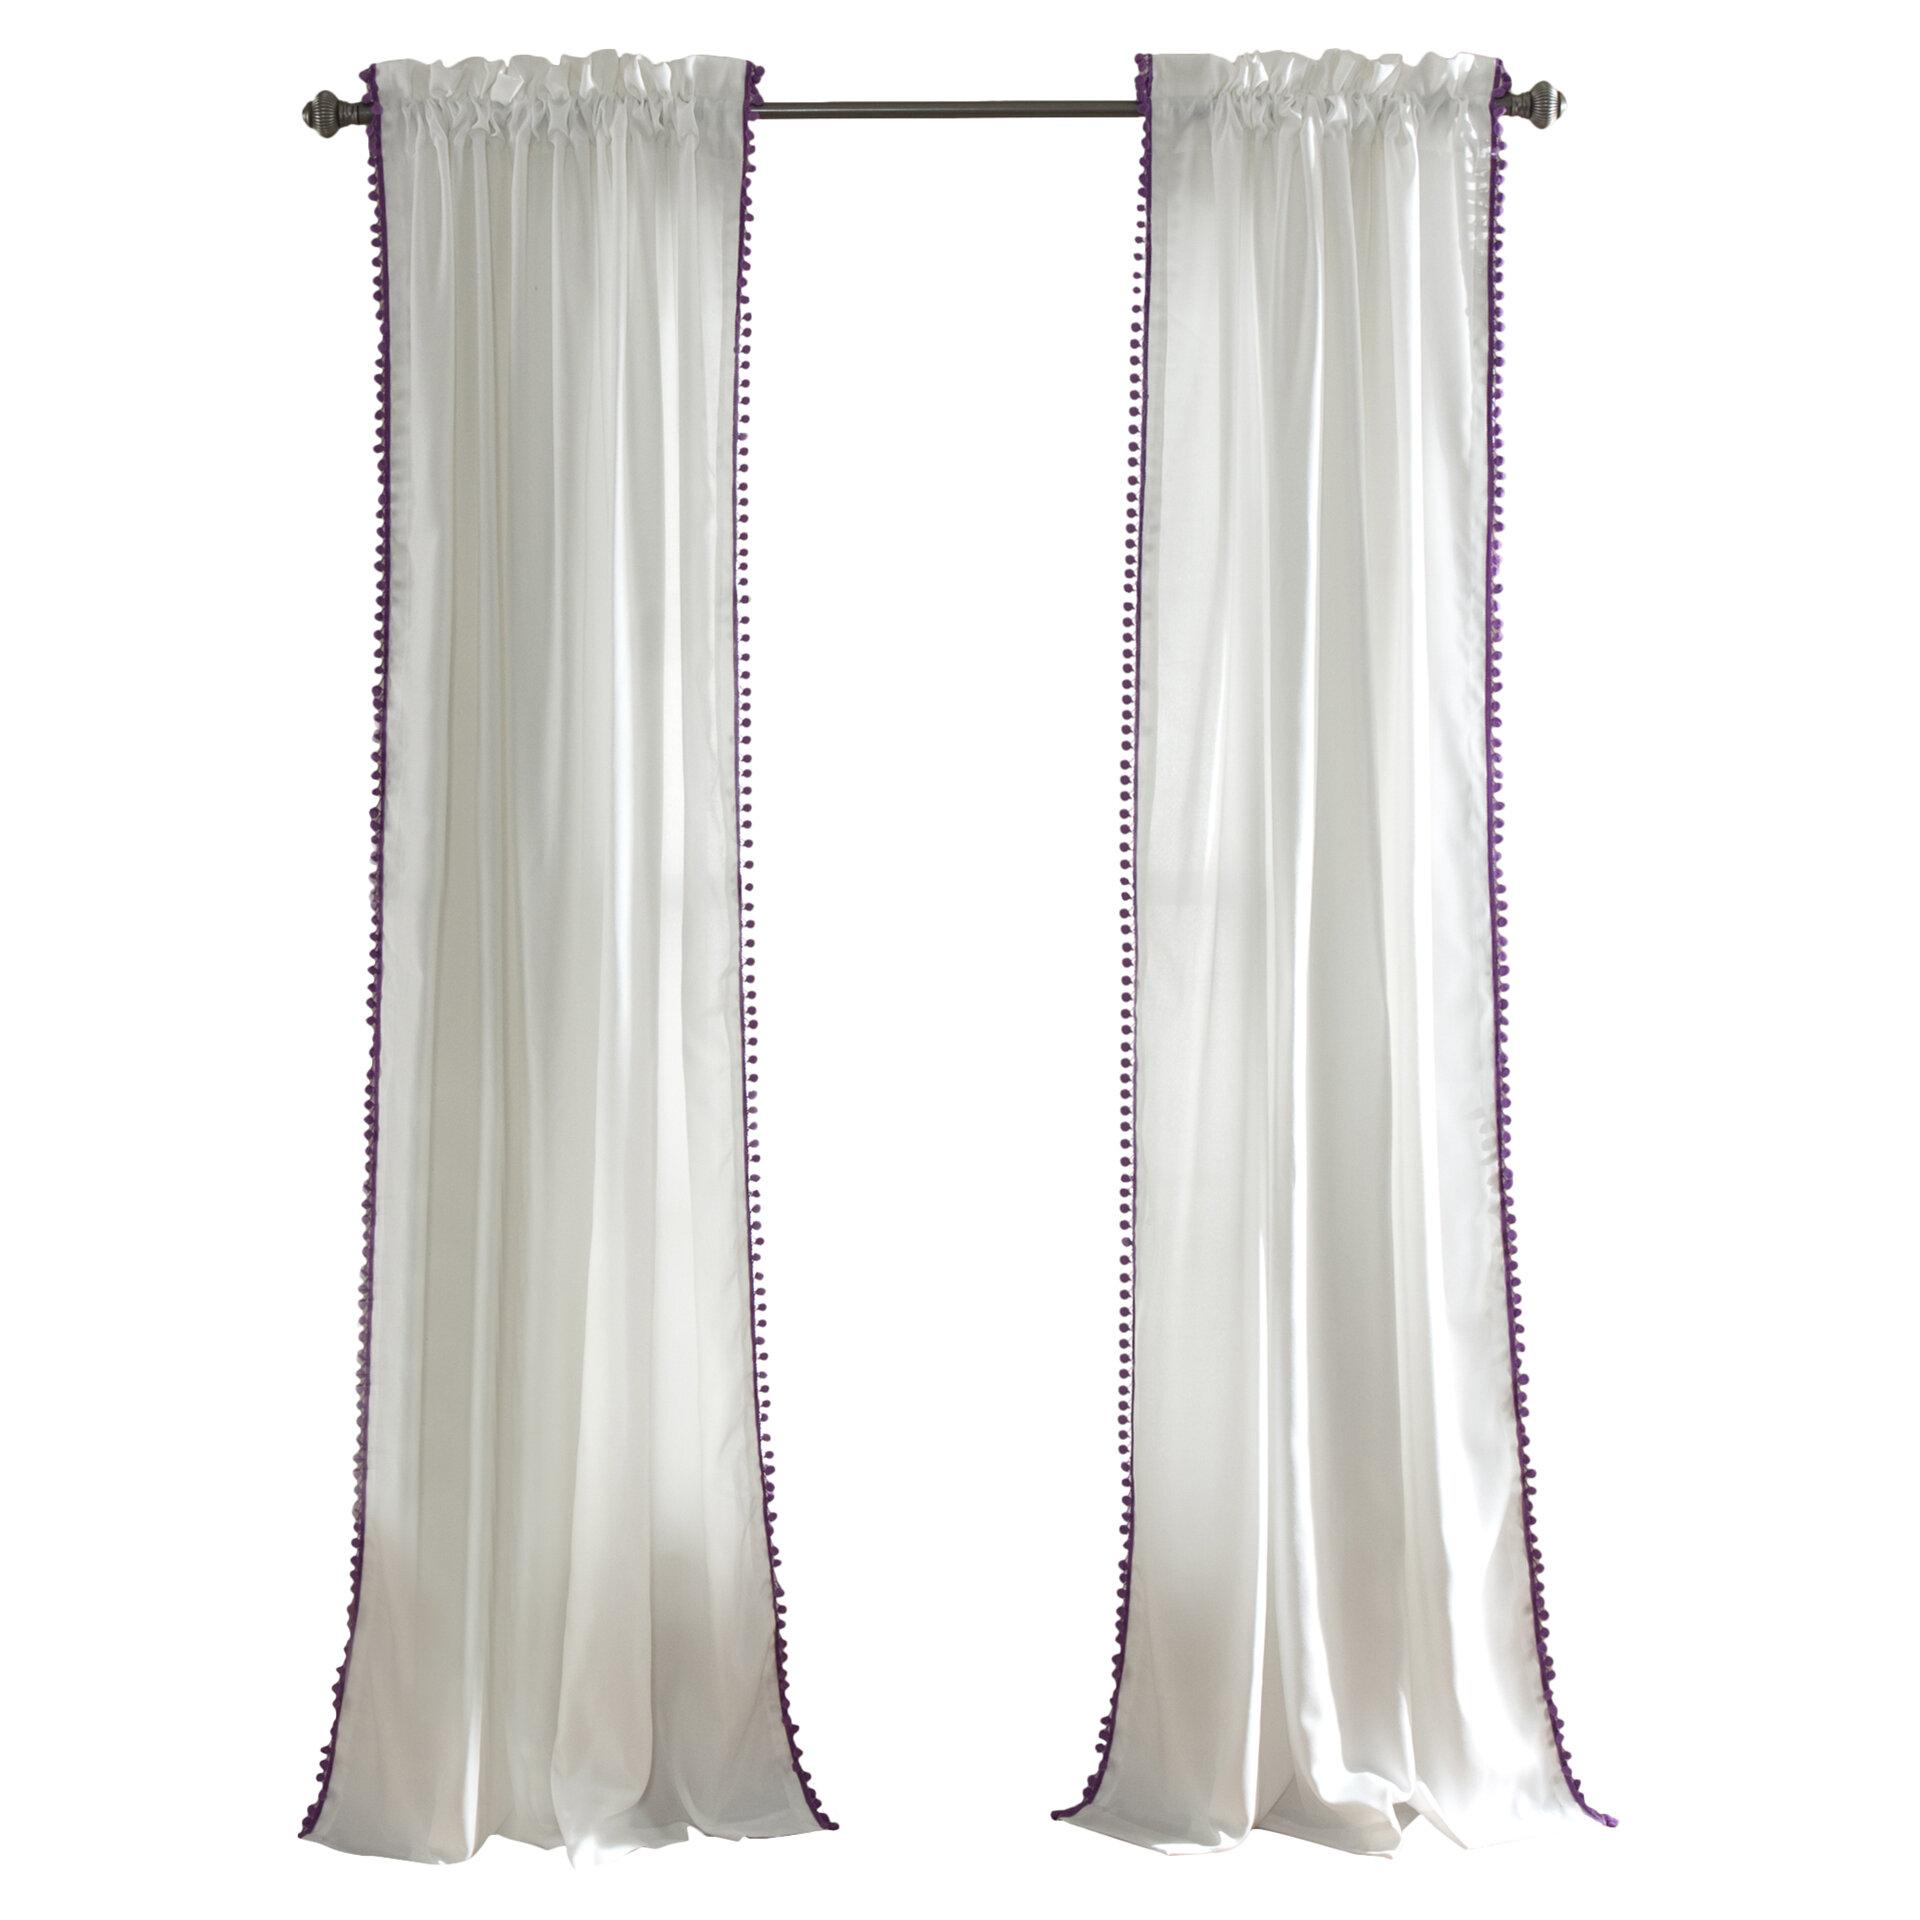 Brannon Solid Sheer Rod Pocket Single Curtain Panel For Tassels Applique Sheer Rod Pocket Top Curtain Panel Pairs (View 13 of 30)